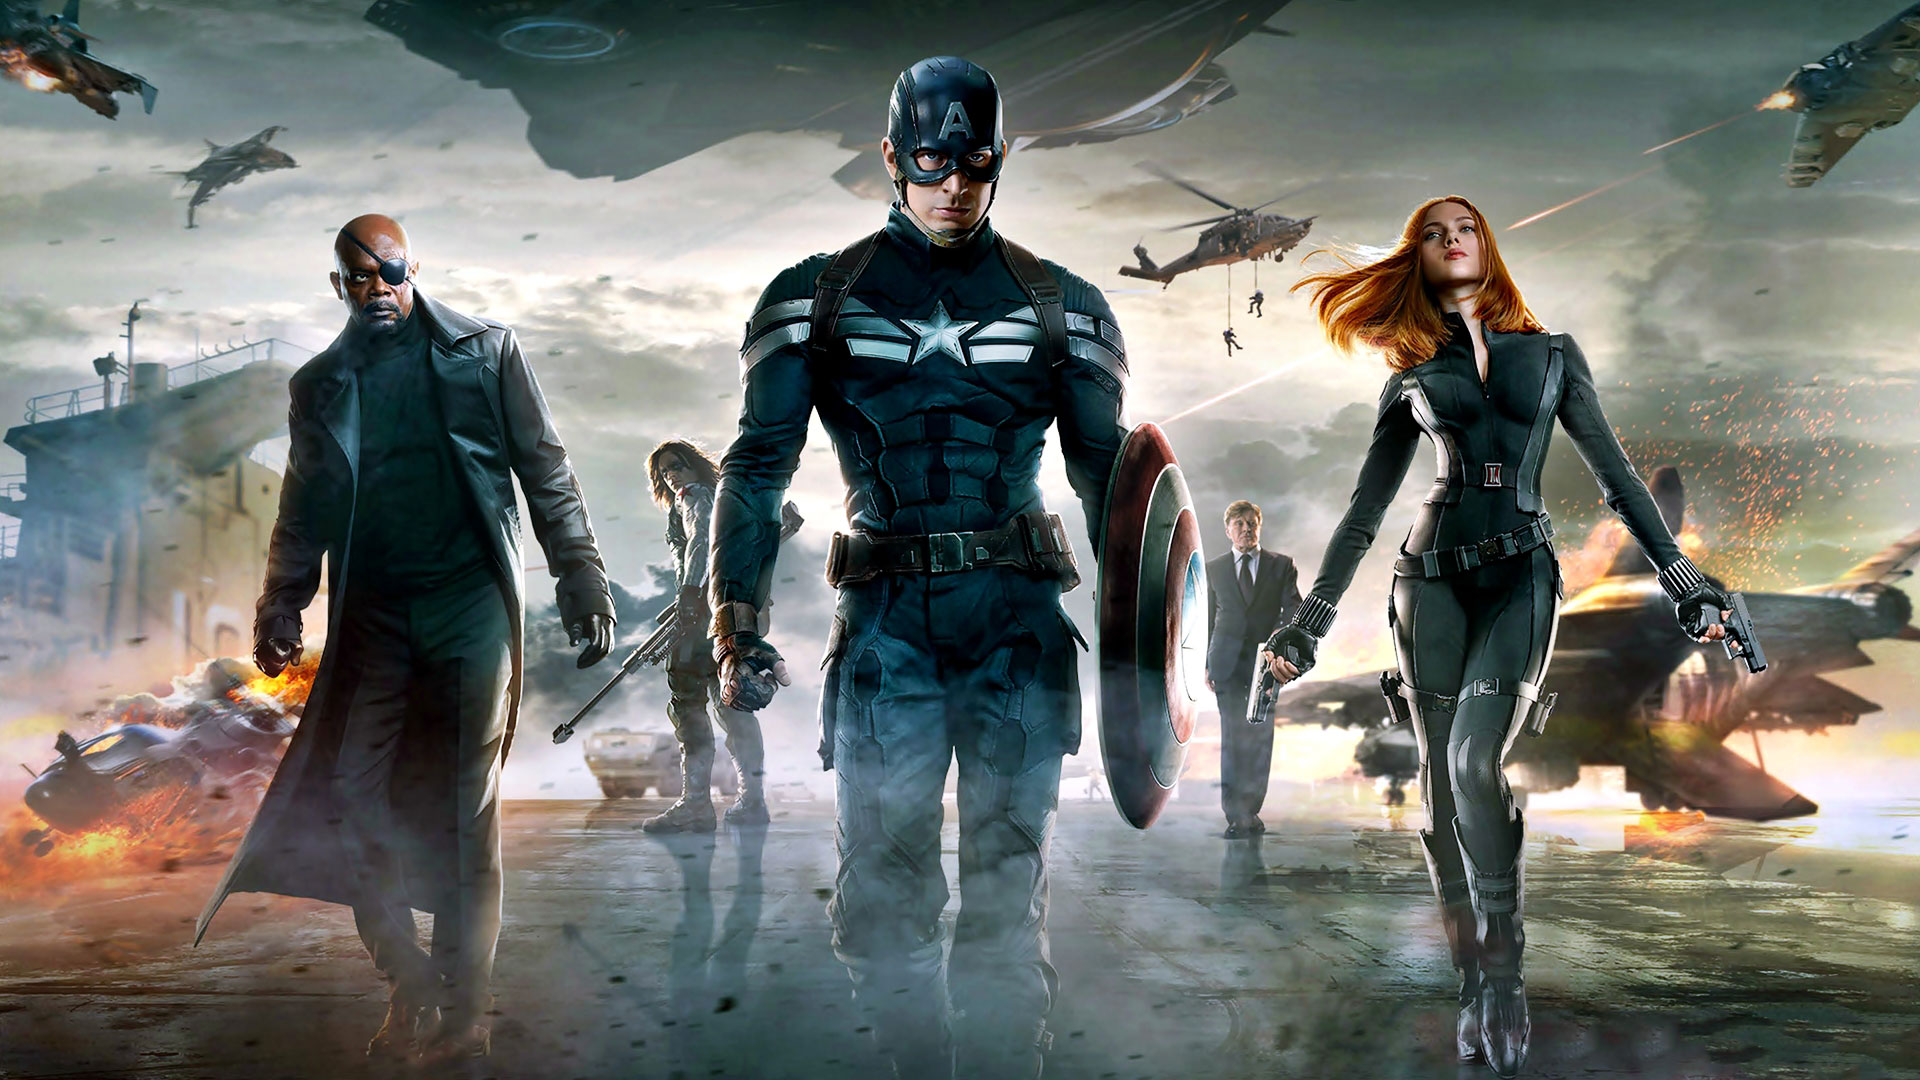 Captain-America-The-Winter-Soldier-2014-Poster-Wallpaper